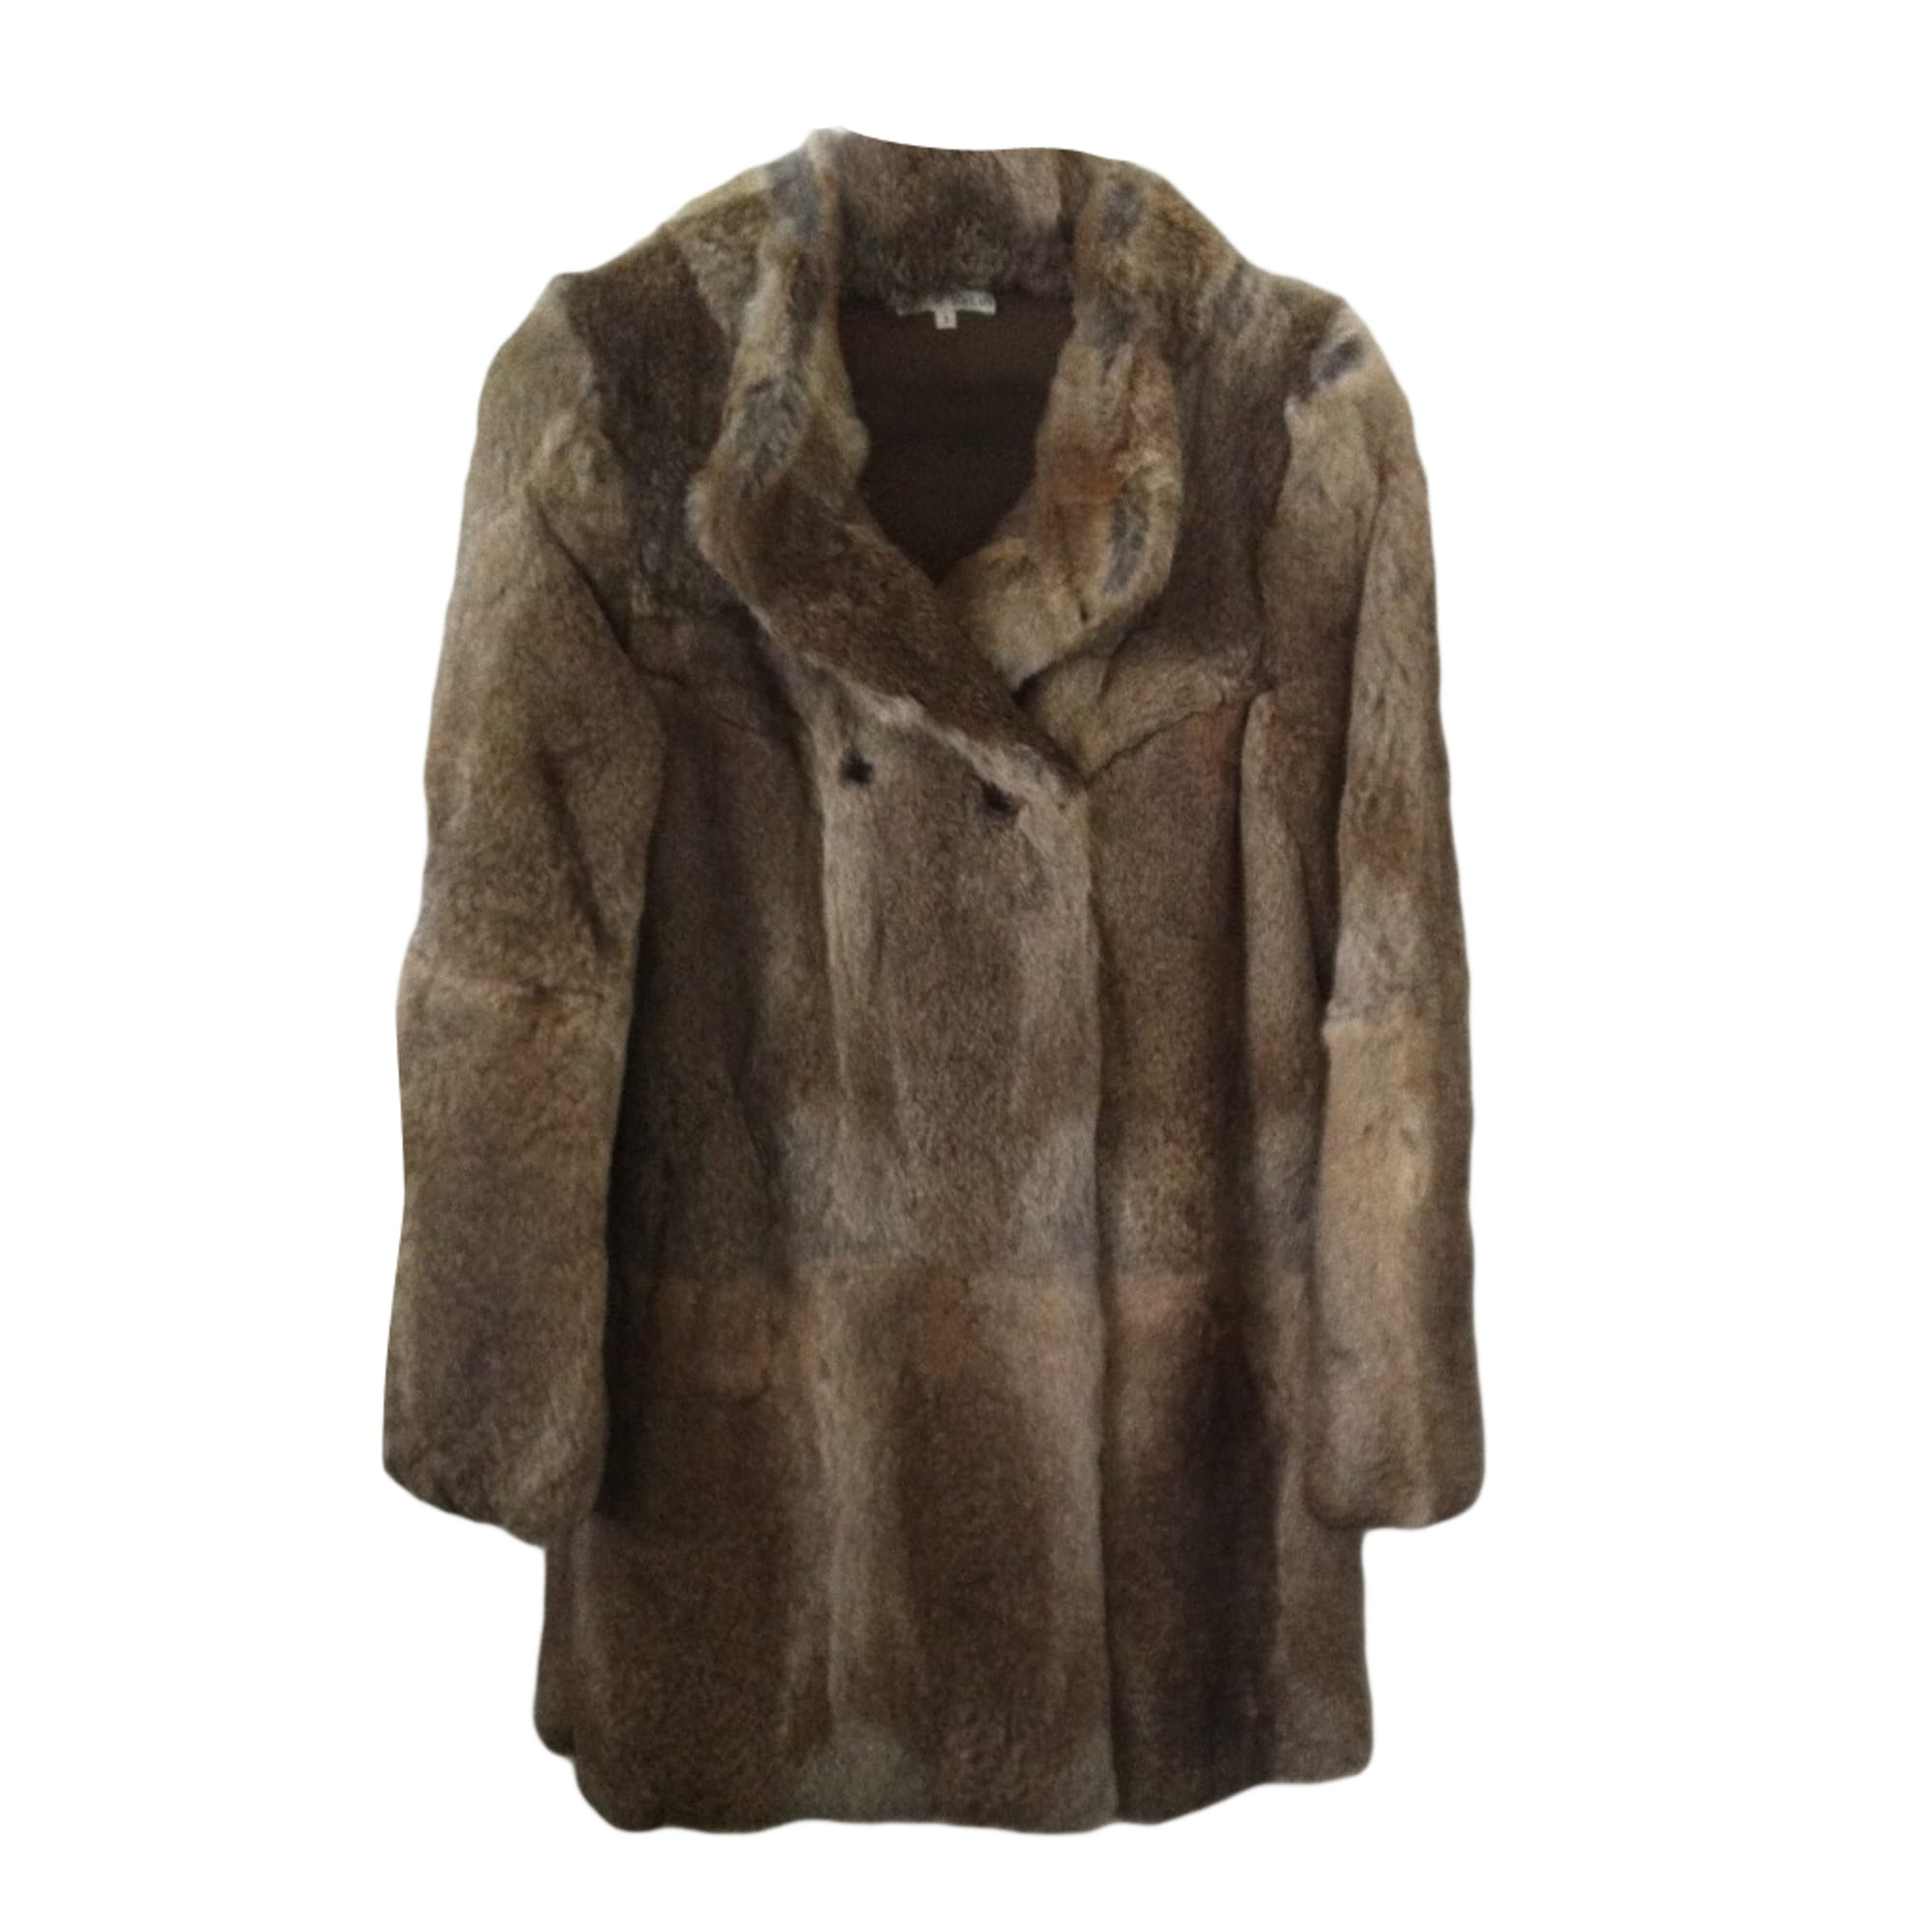 Fur Coat BA&SH Beige, camel